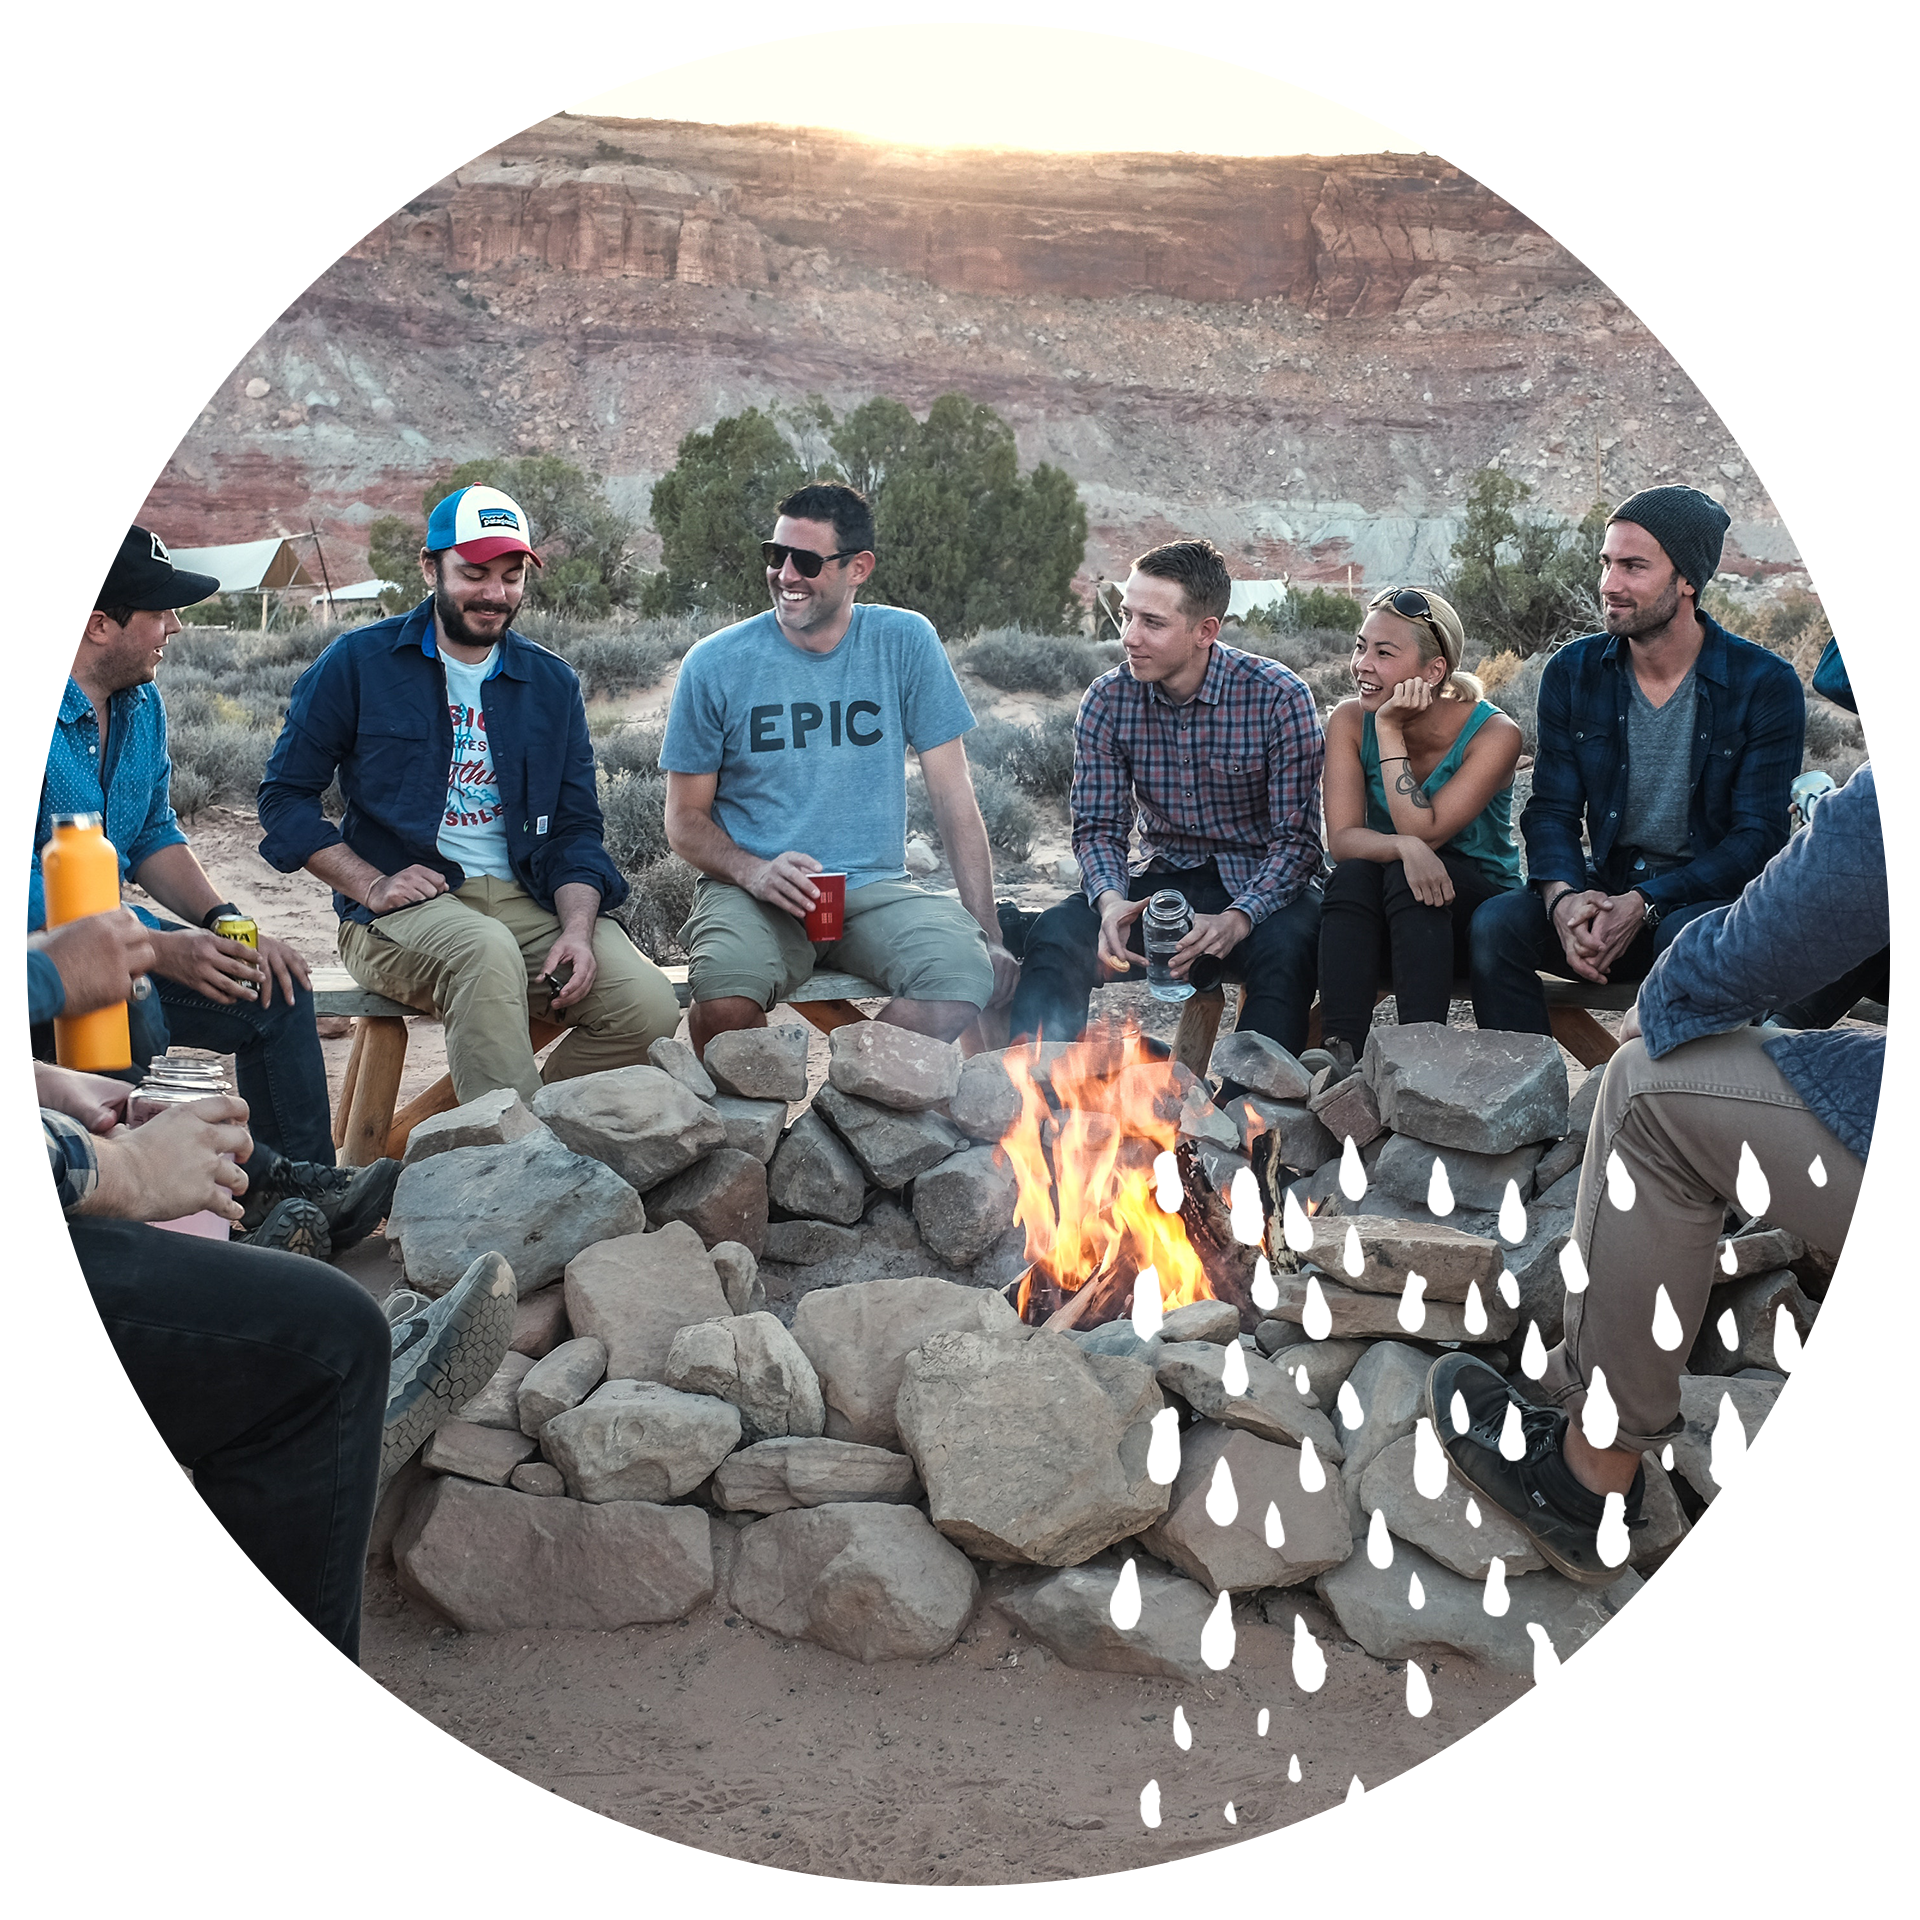 Summer Small Groups - This summer we've got something for every interest: workout groups, hiking groups, study groups, men's groups, women's groups, and more. Wherever you are in life or on your spiritual journey, there's a group for you.